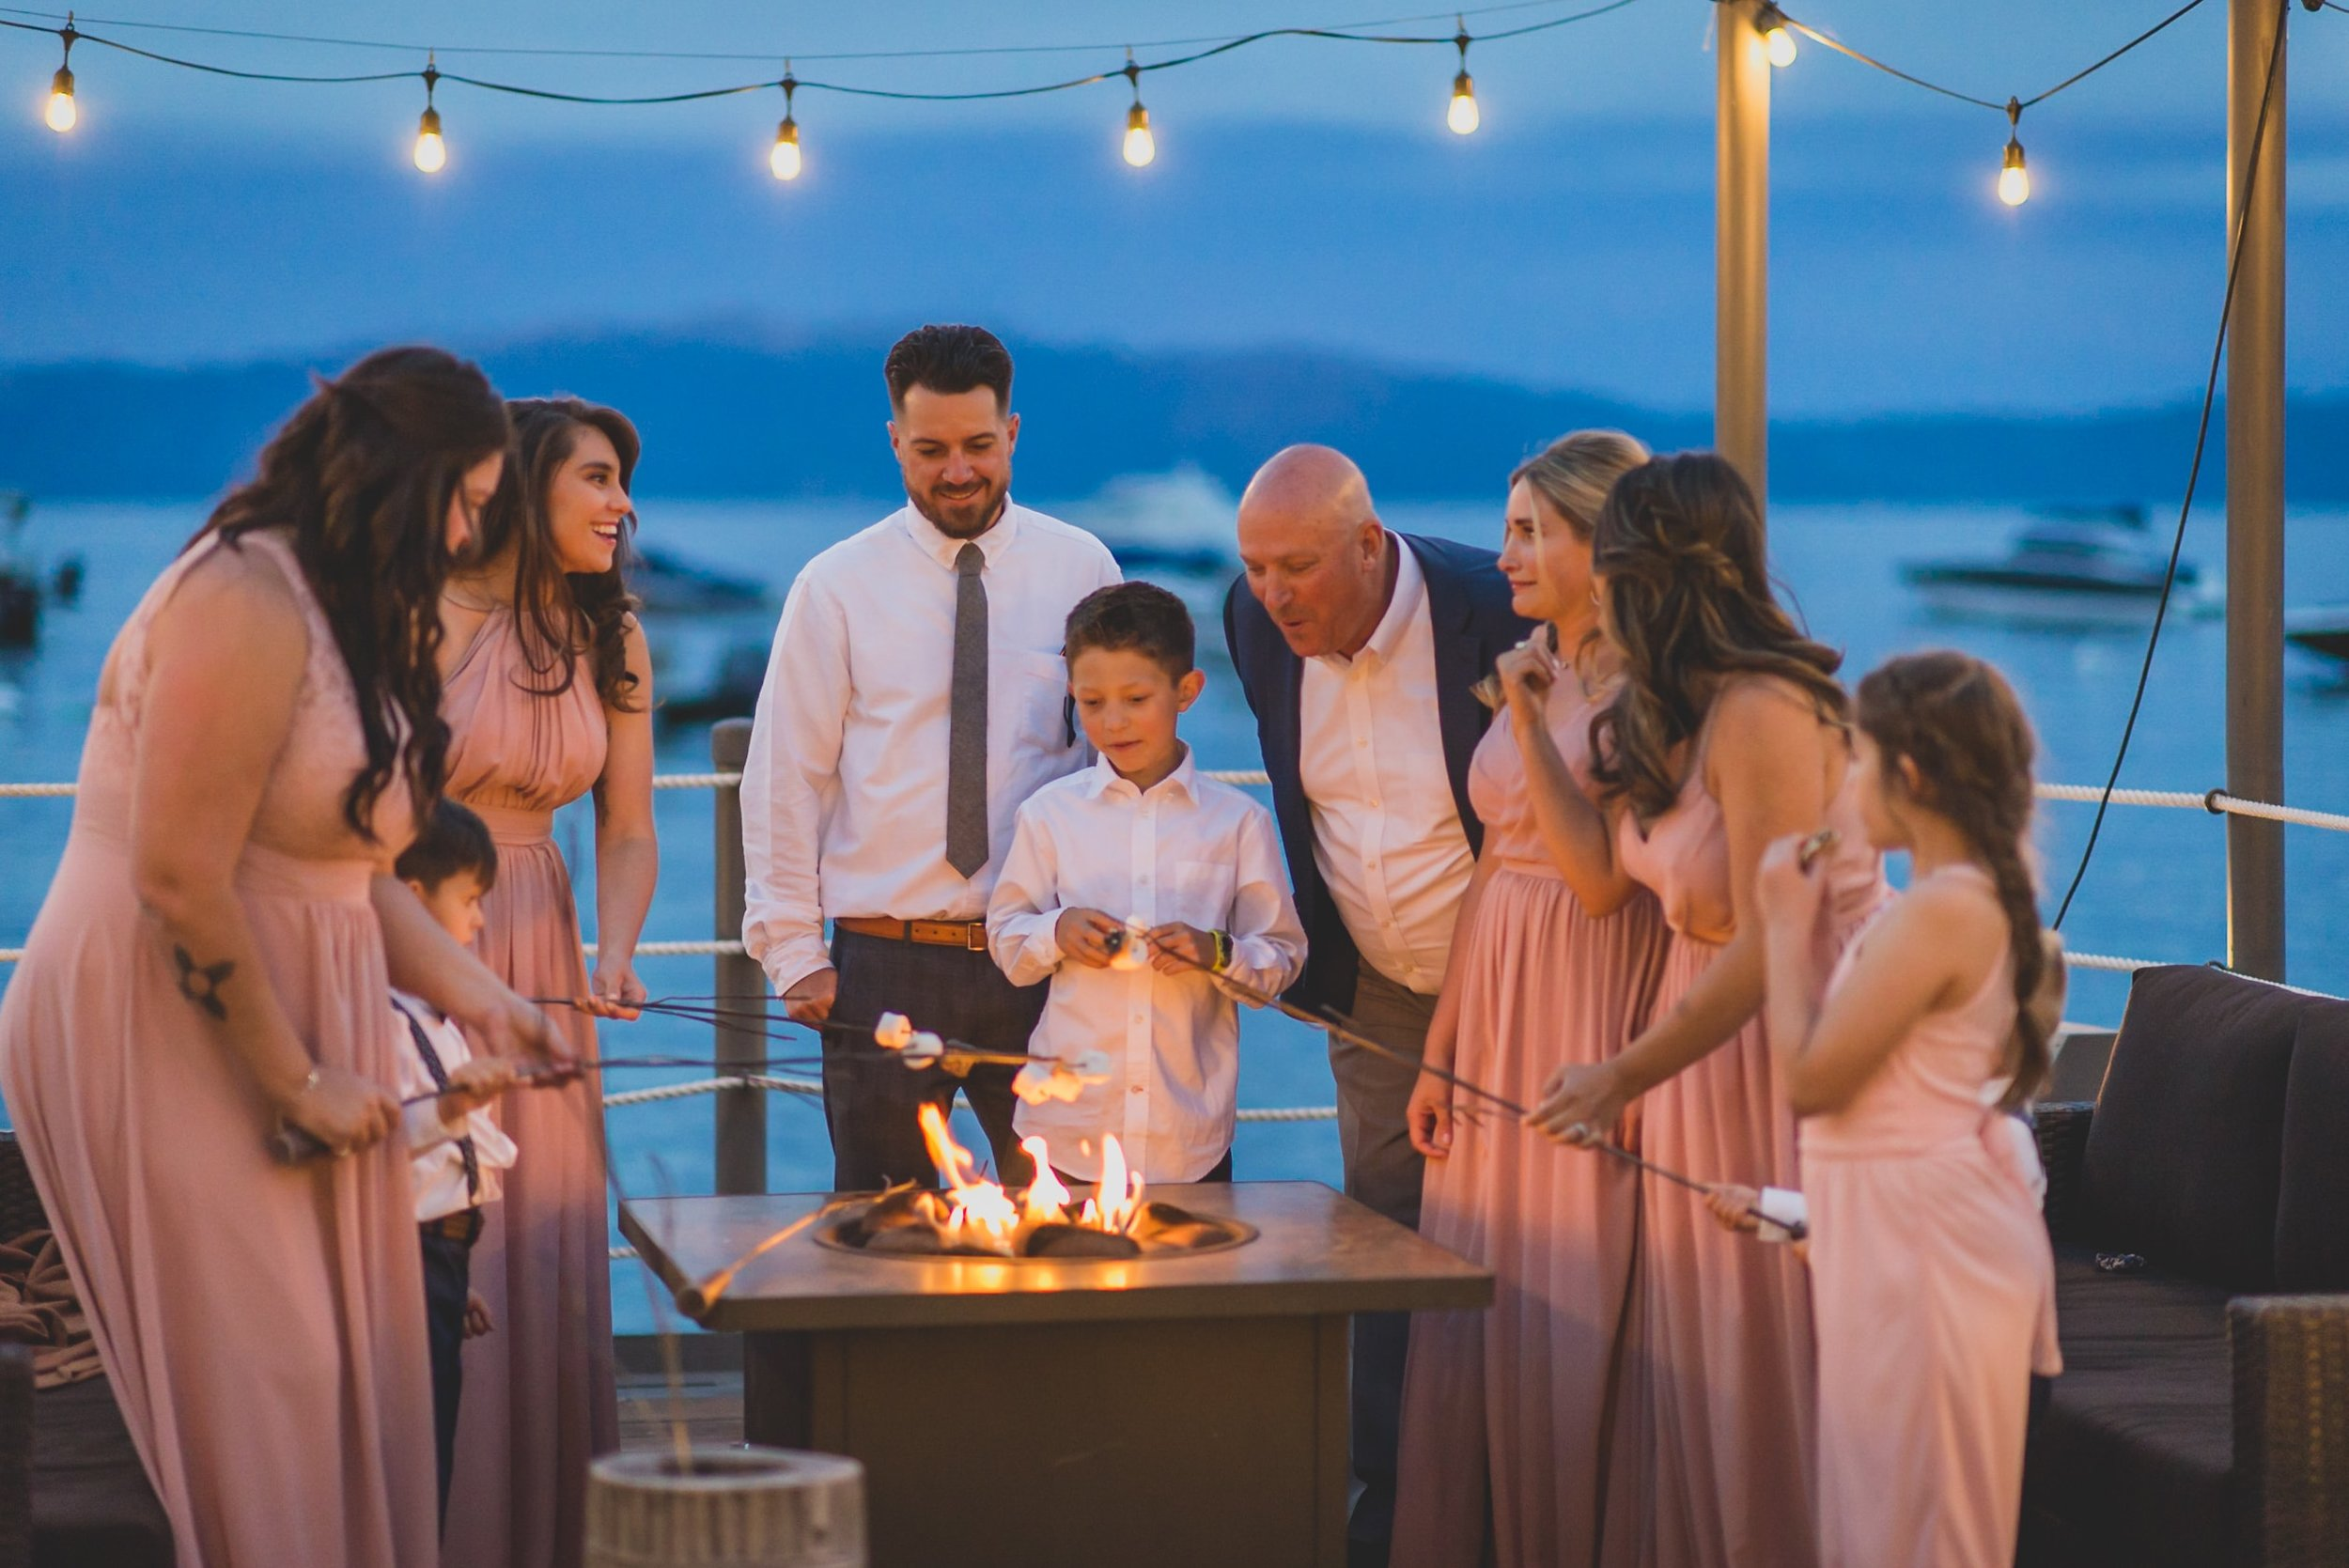 Last Minute Checklist: Things to Know Before Your Outdoor Wedding - The bridal party roasting marshmallows at an outdoor fire pit during an evening wedding reception.